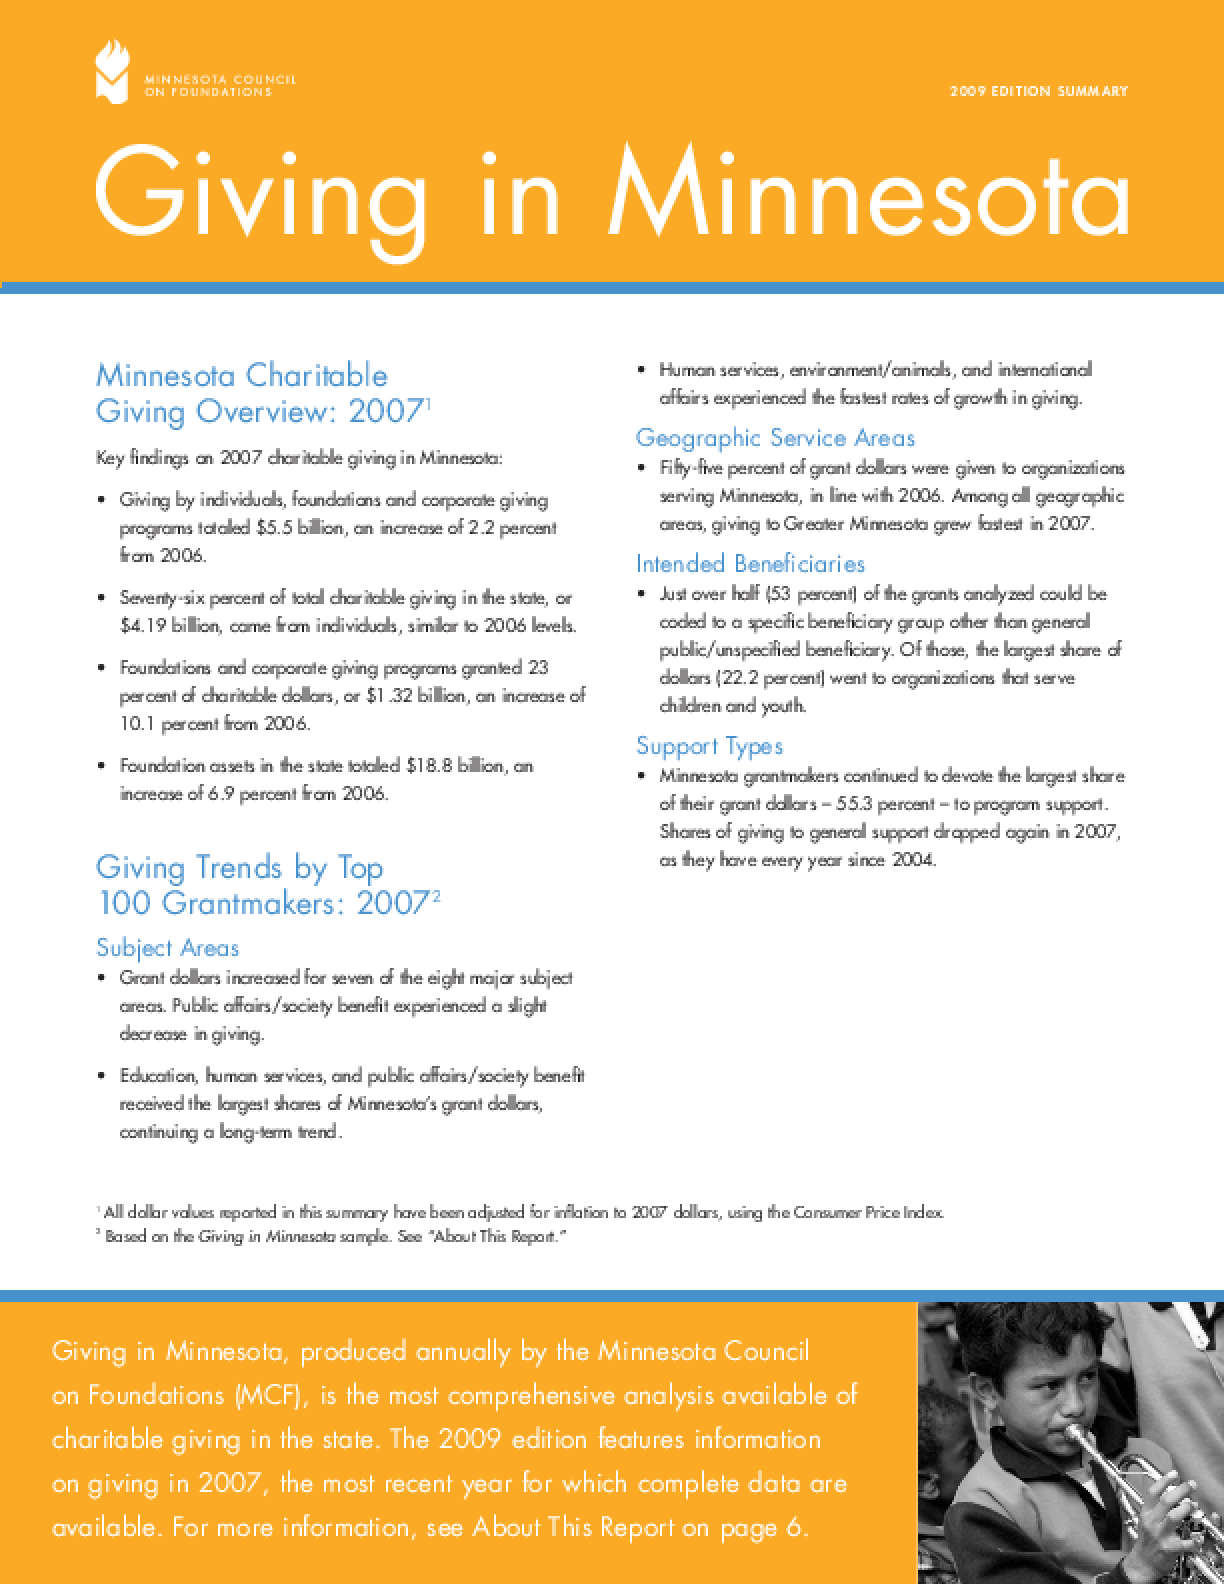 Giving in Minnesota 2009 Edition Summary